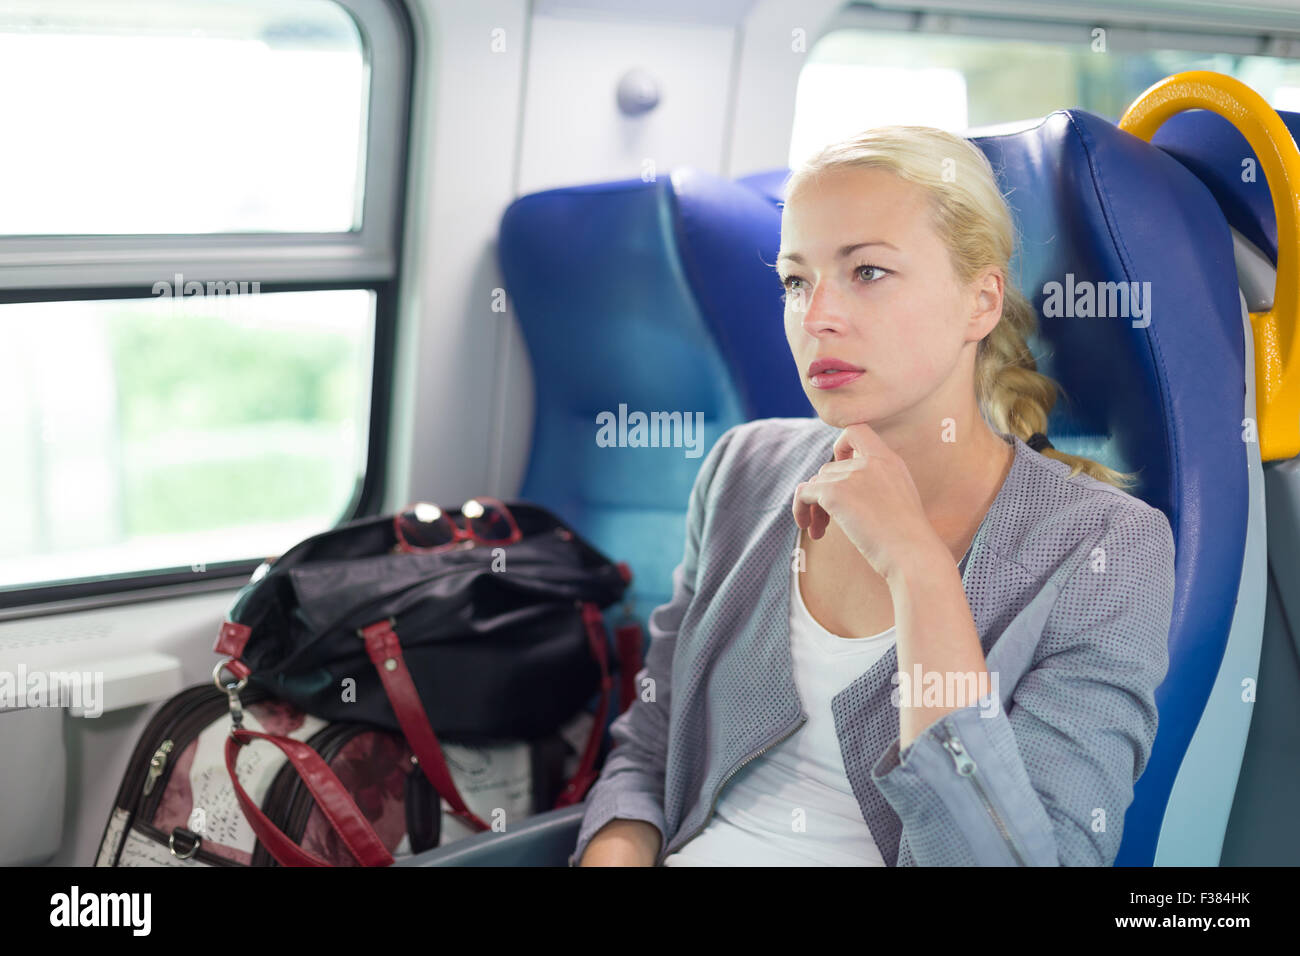 Blonde caucasian business woman traveling by train. Business travel concept. - Stock Image